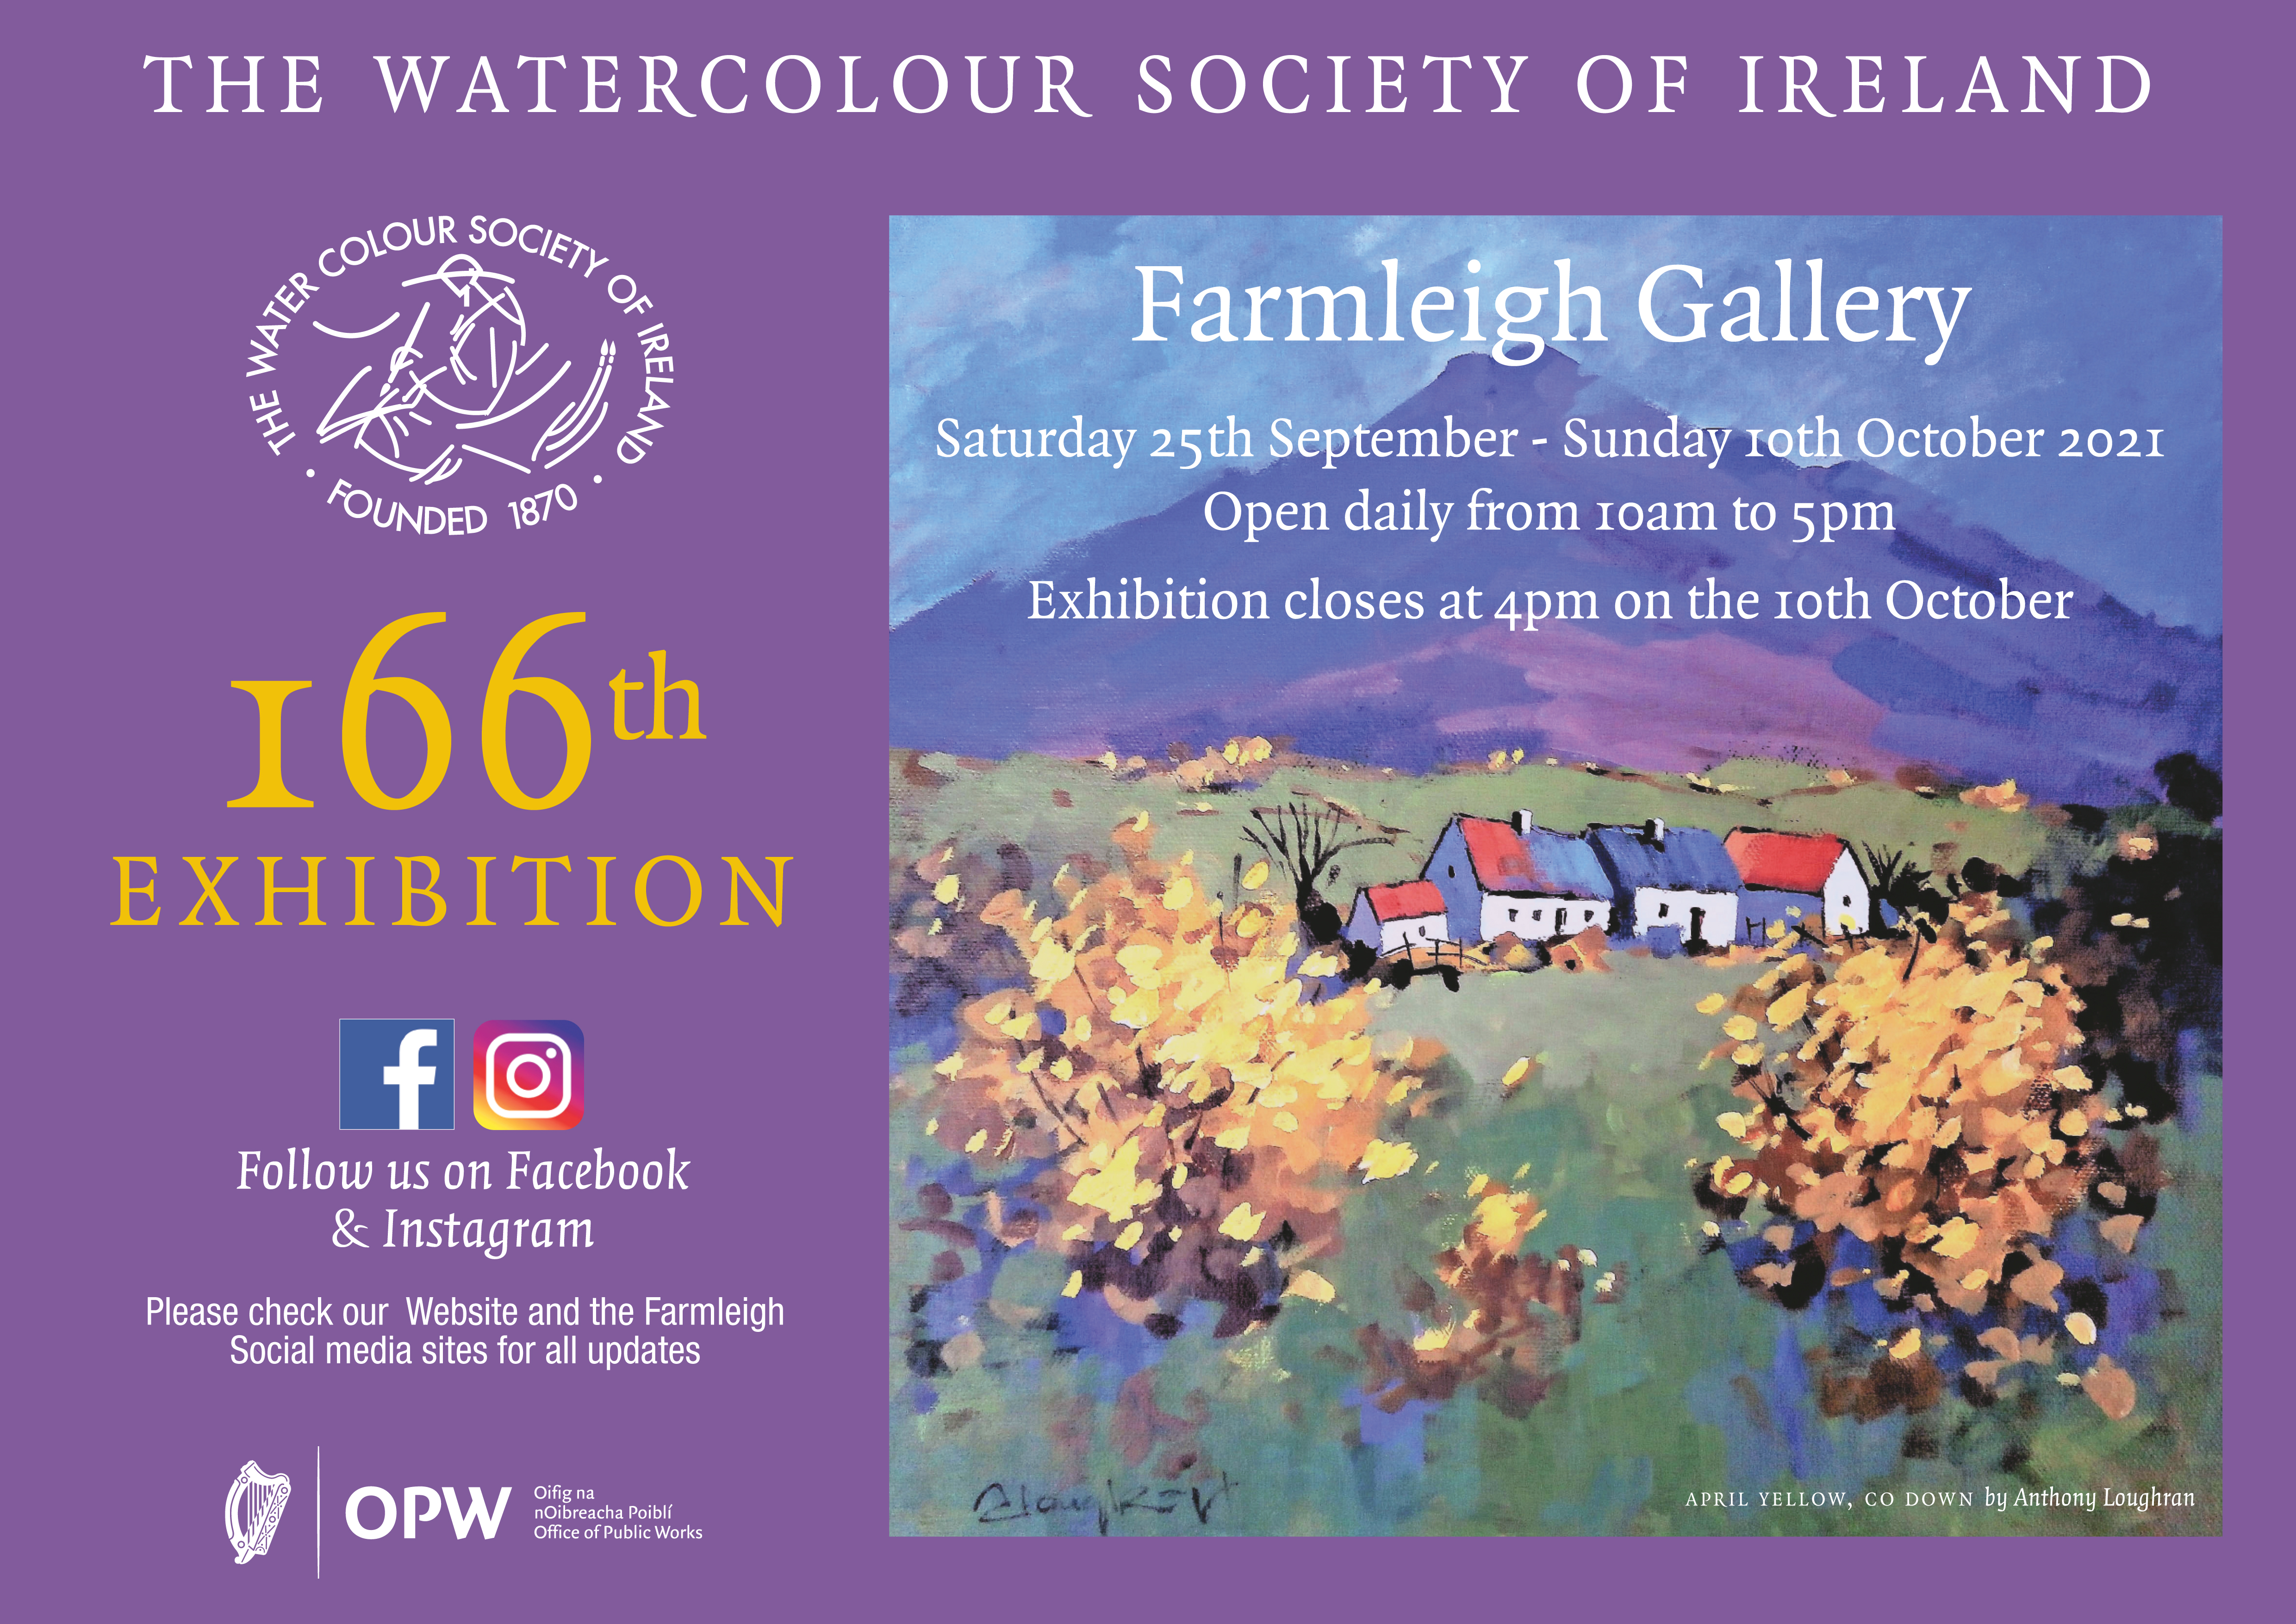 Watercolour Society Invite with image by Anthony Loughran